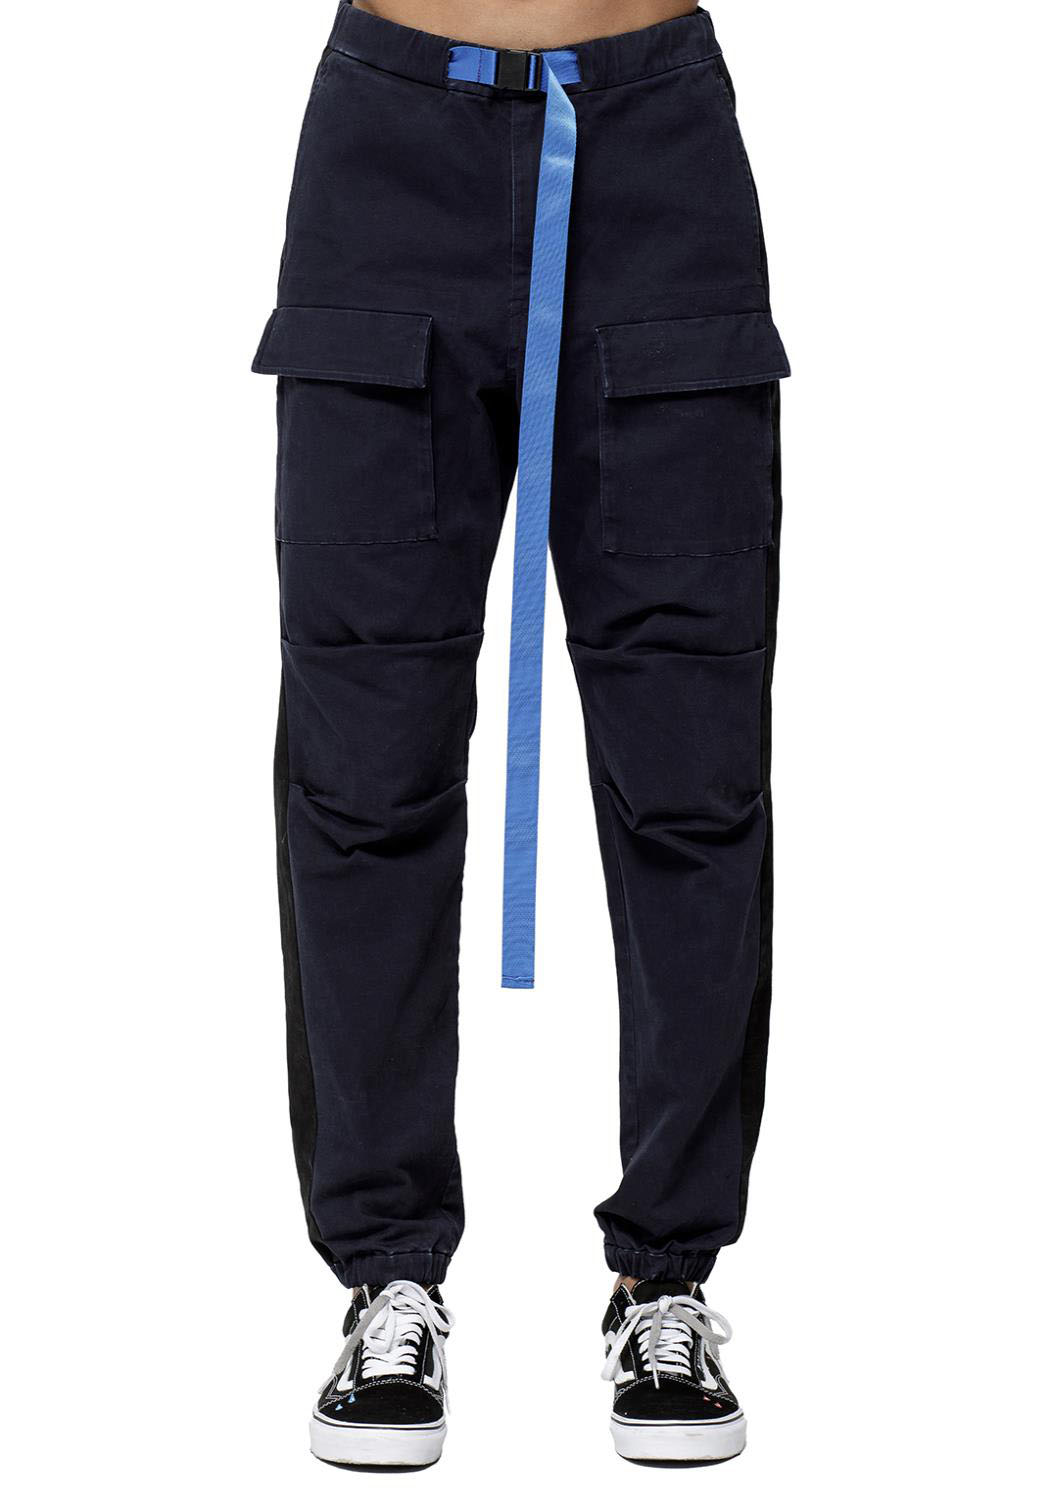 Konus Men Clothing Alta Pants